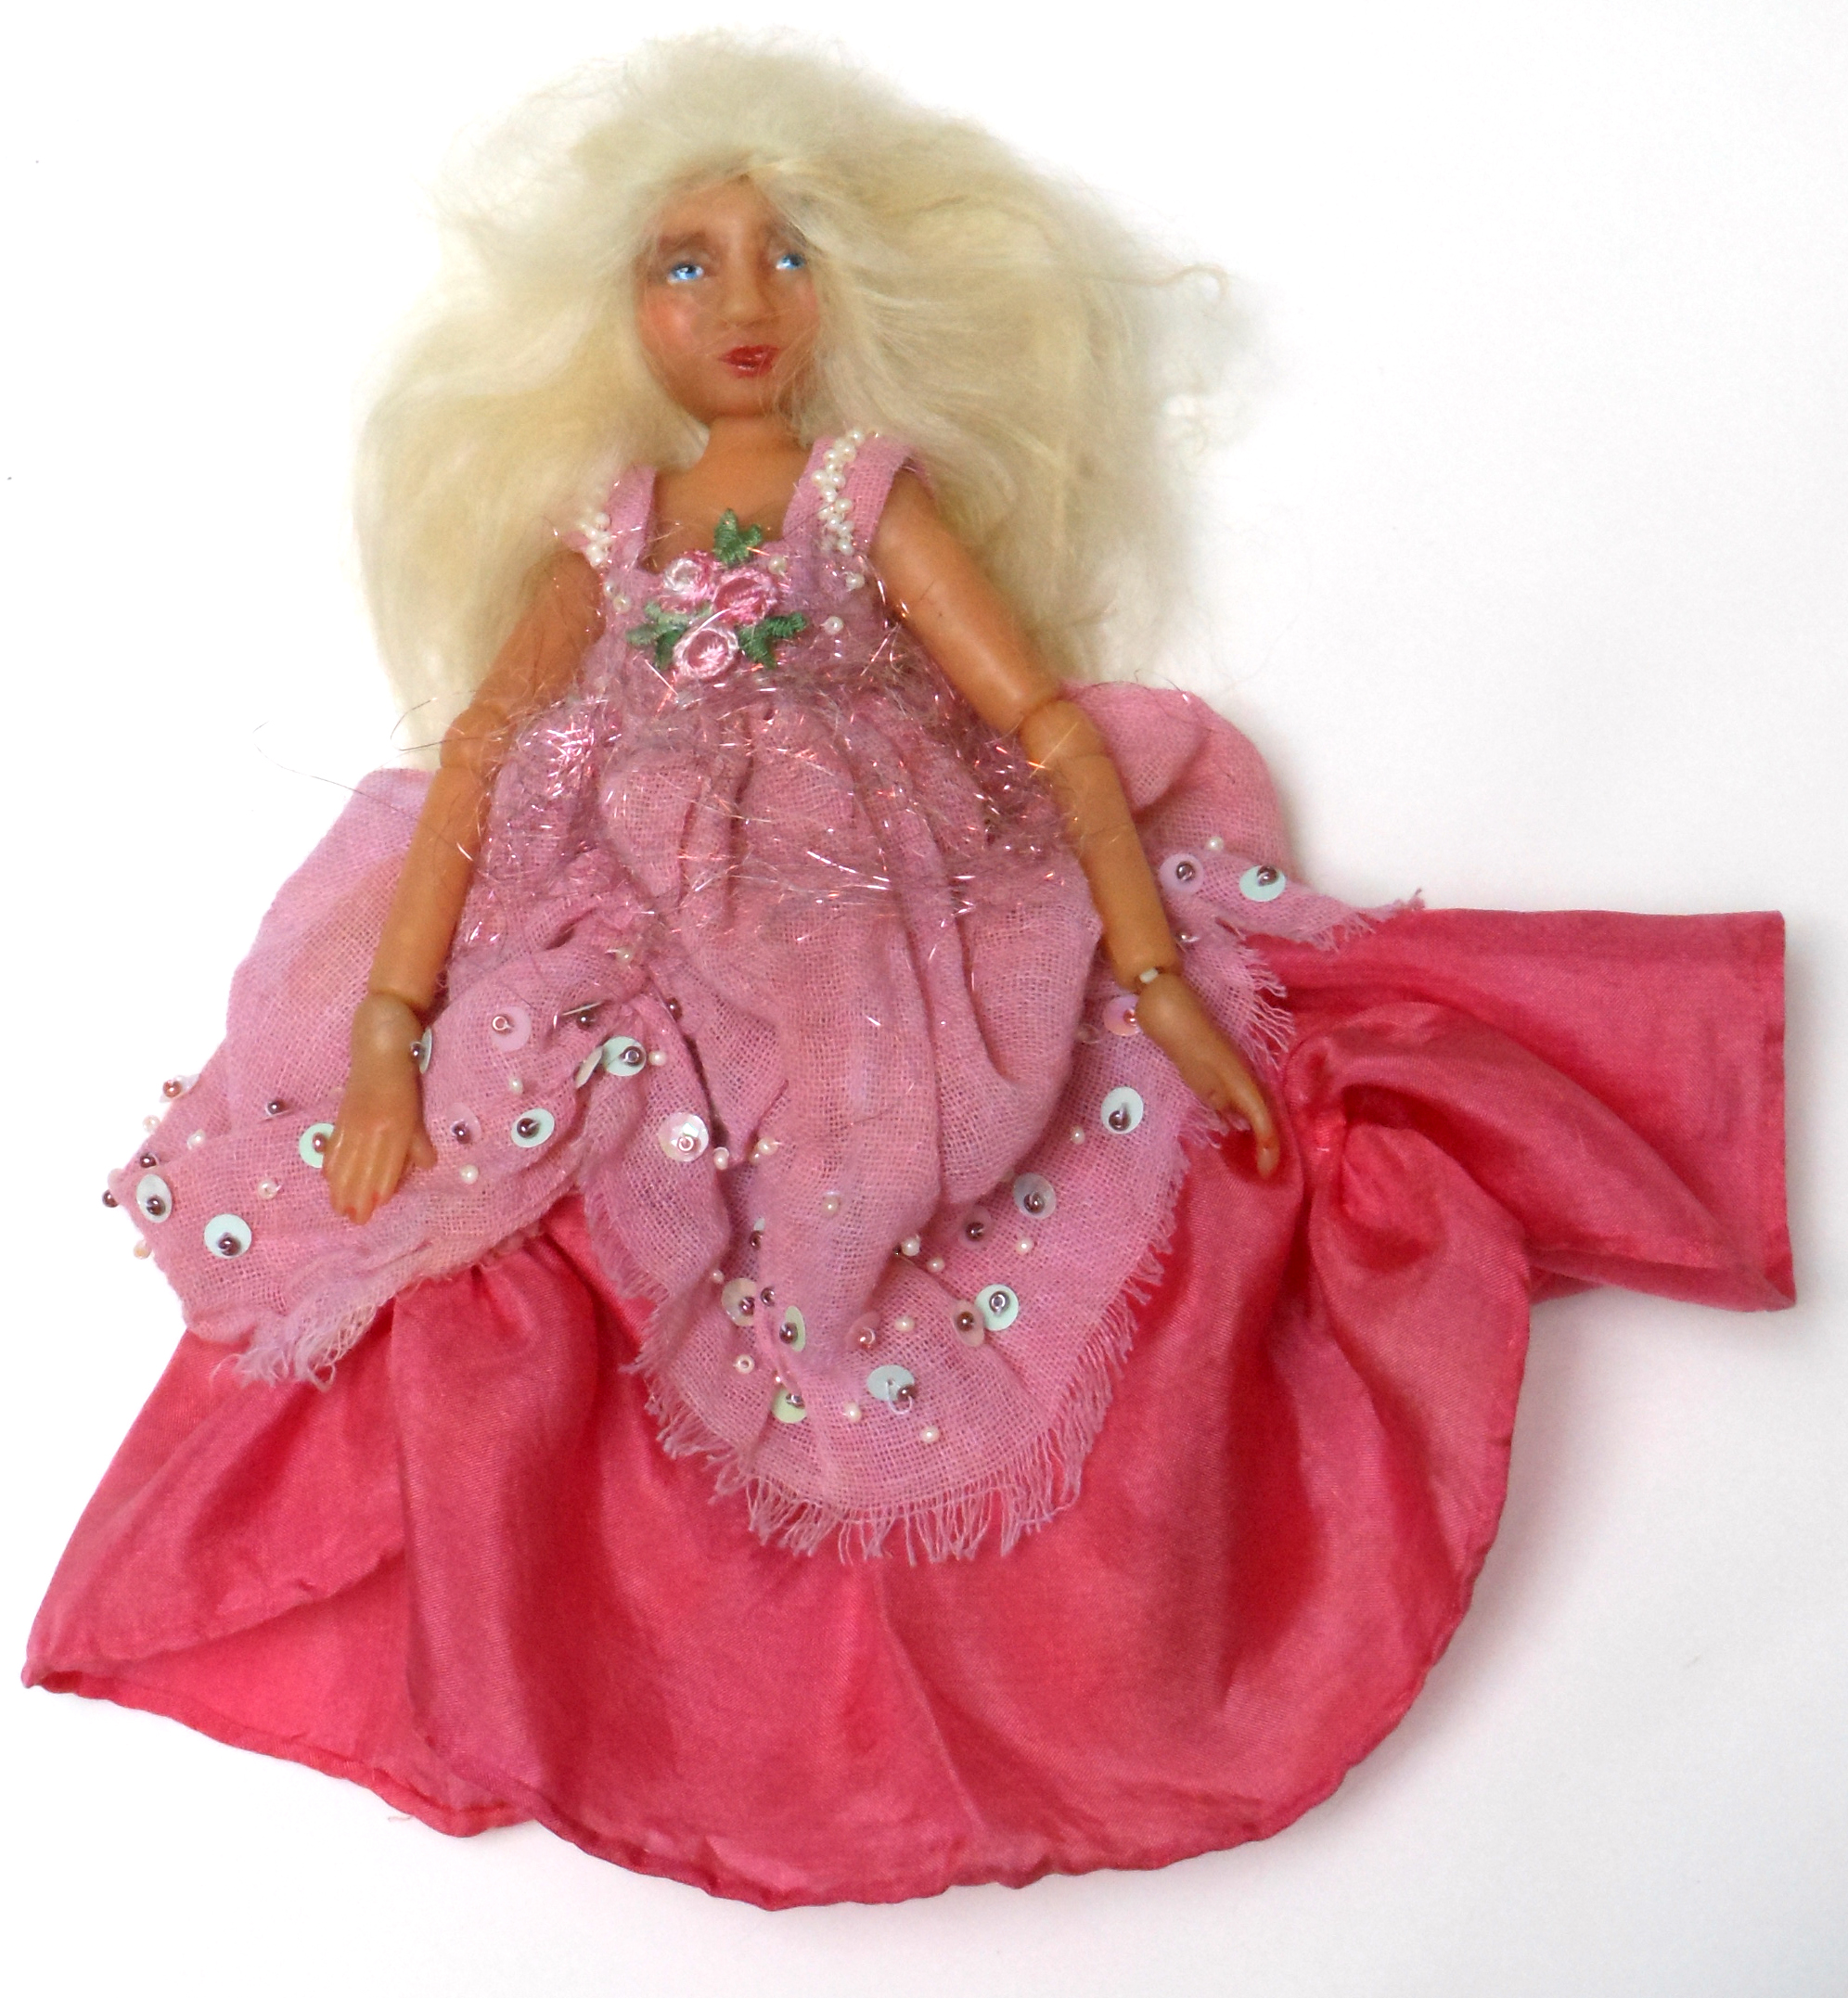 Lulabelle, a Ball Joint Doll